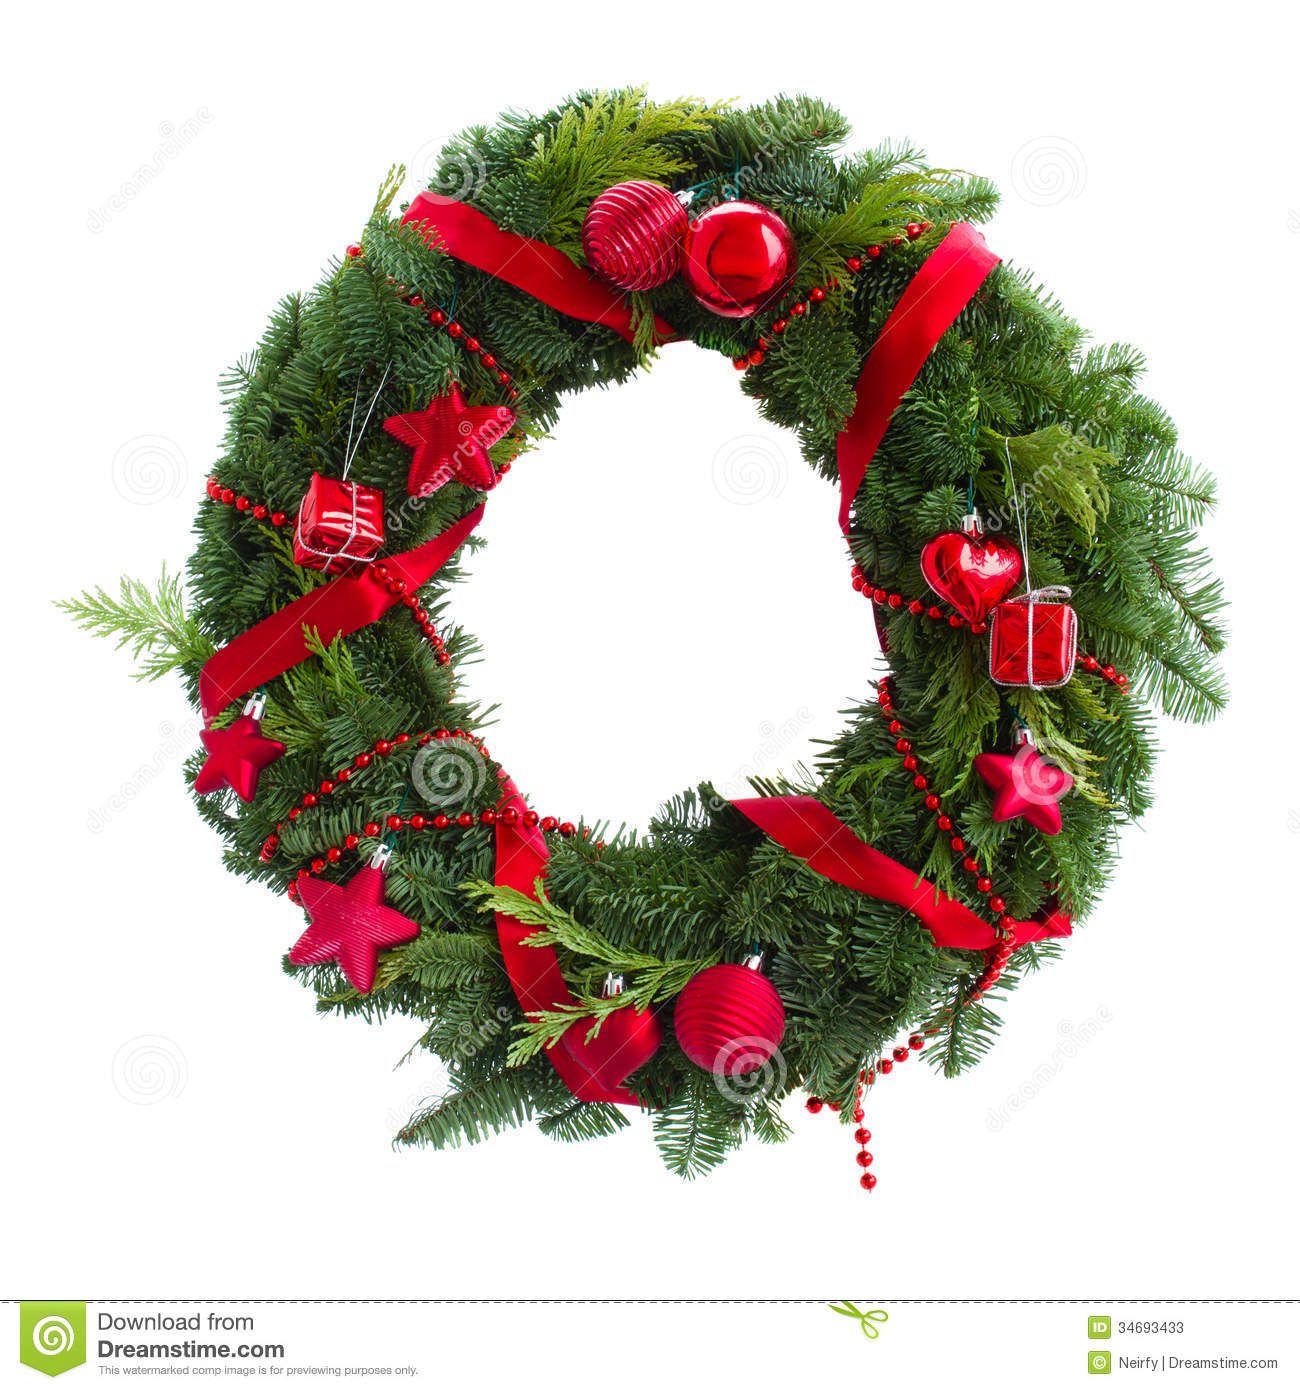 download green christmas wreath with red decorations stock image image of christmas background - Red And Green Christmas Decorations